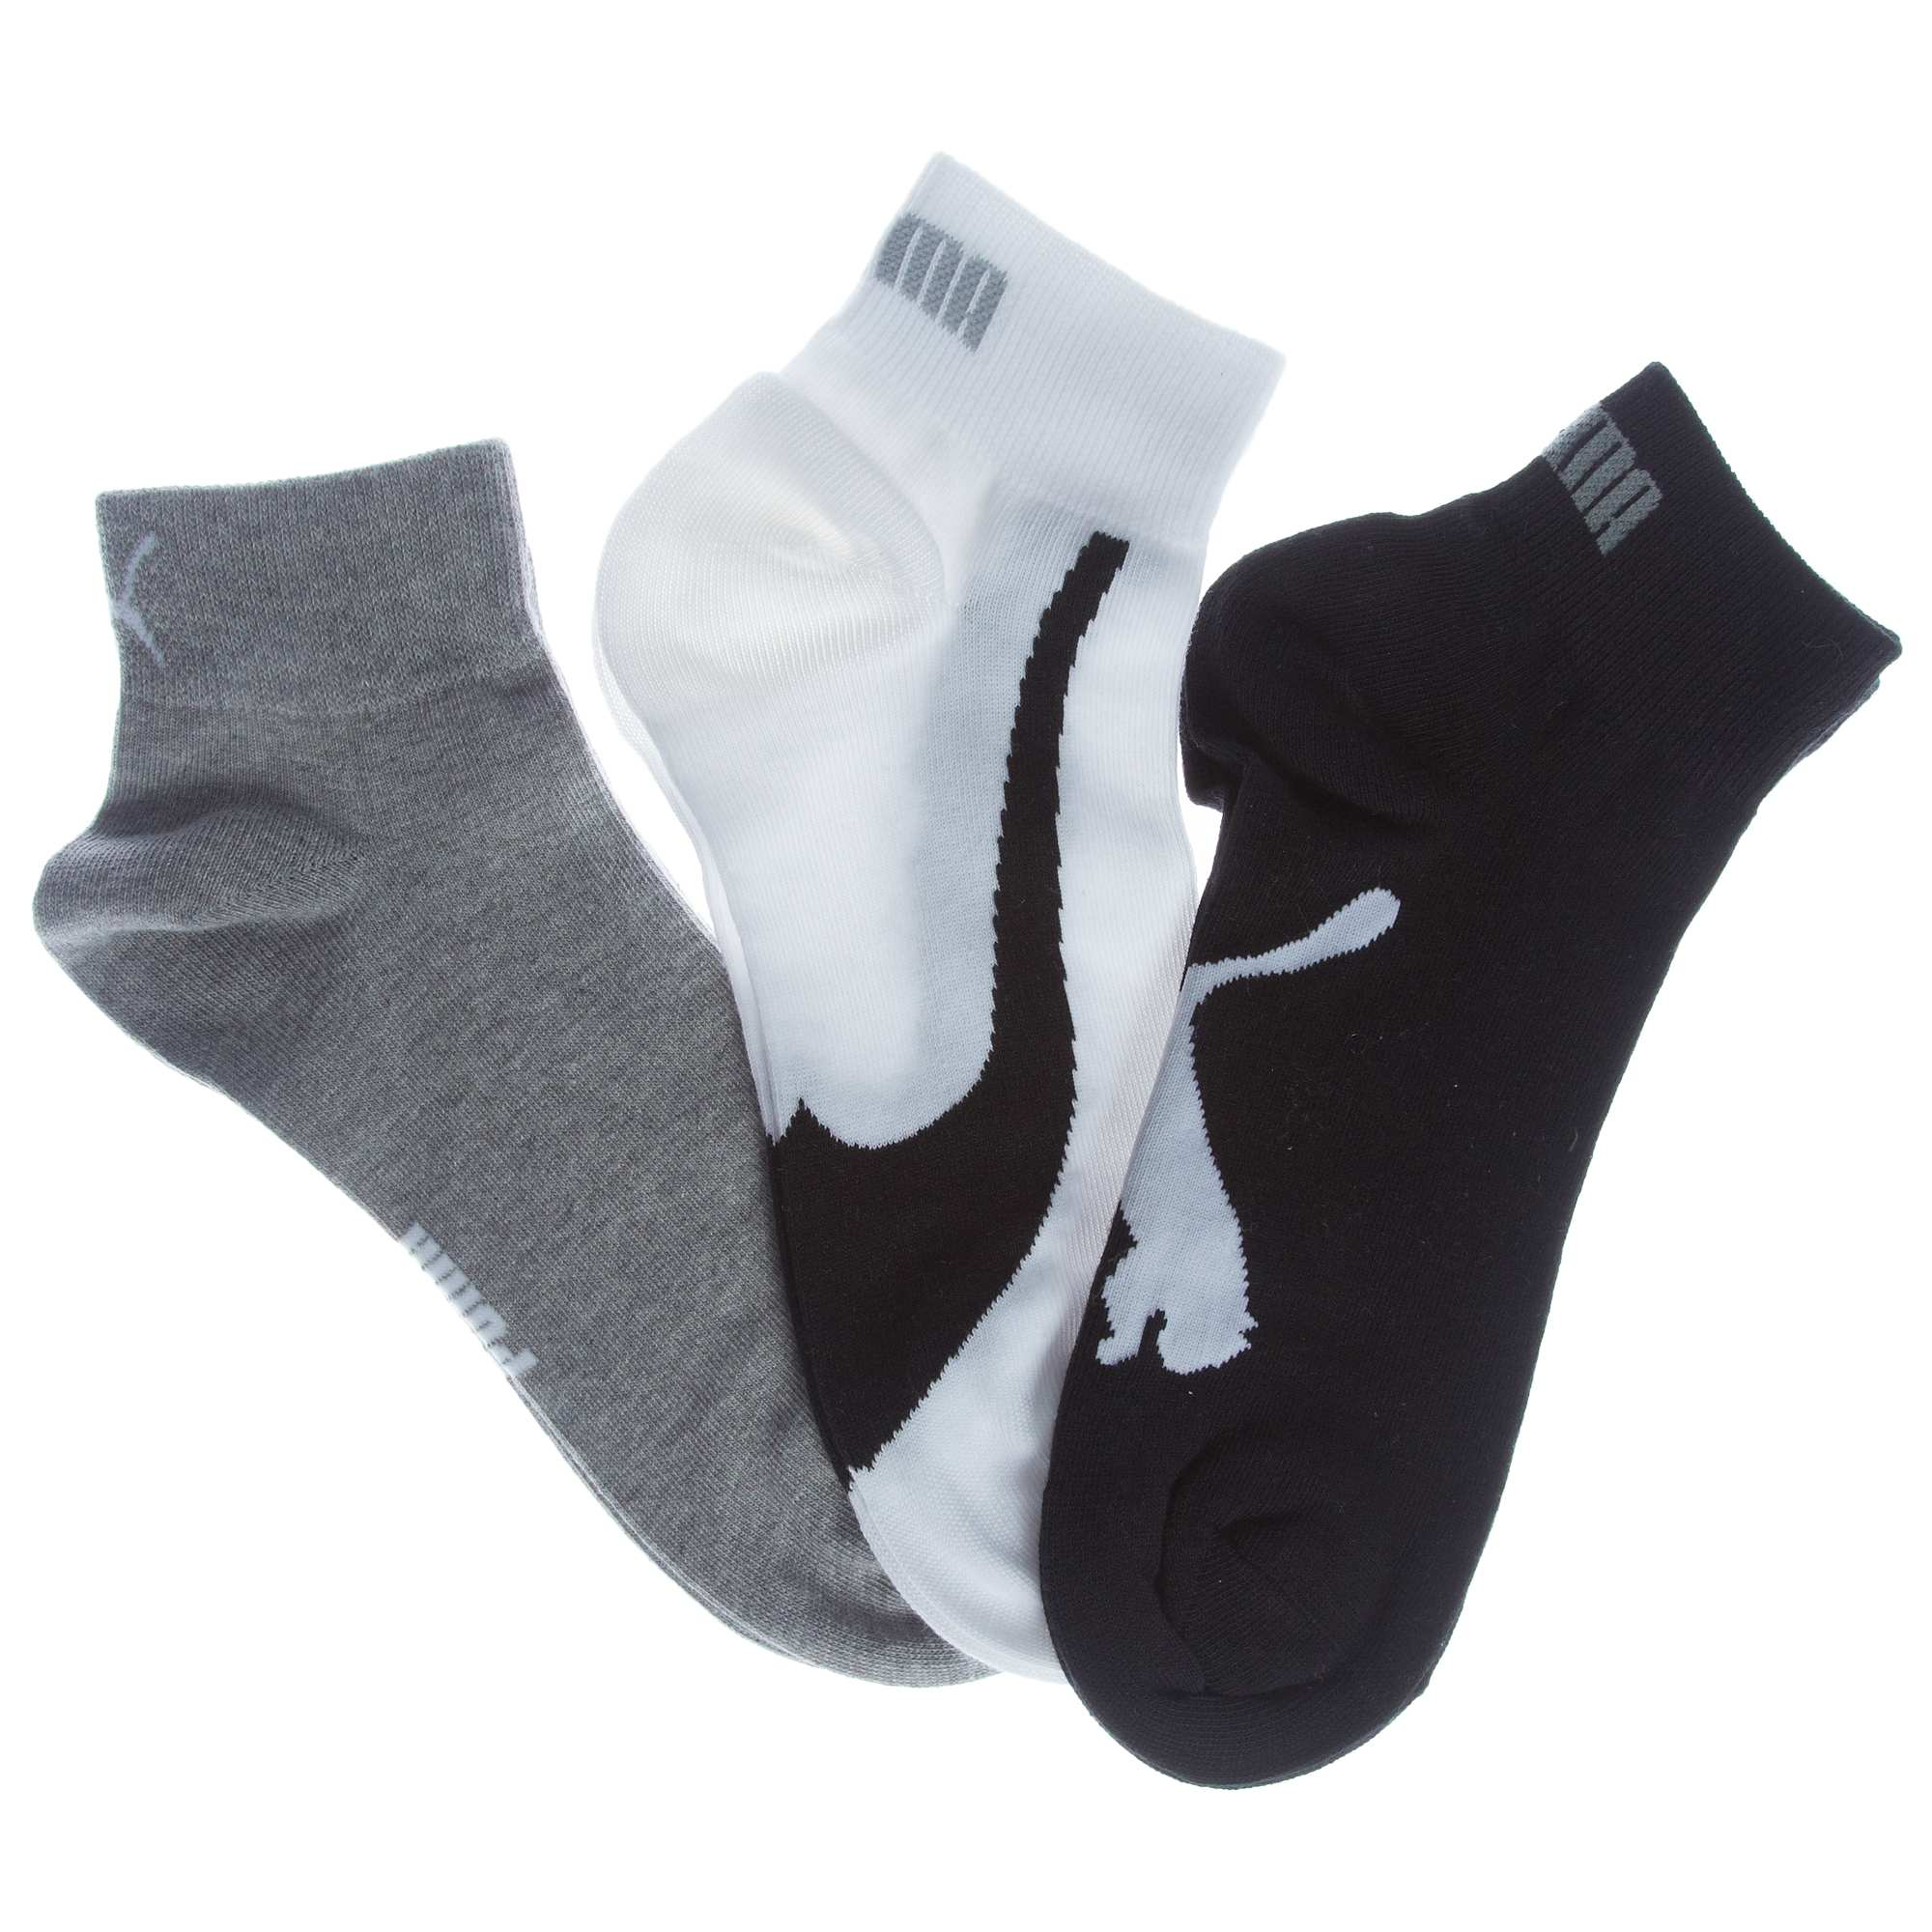 lot de 3 paires de chaussettes basses 39 puma 39 grande taille homme kiabi 7 99. Black Bedroom Furniture Sets. Home Design Ideas